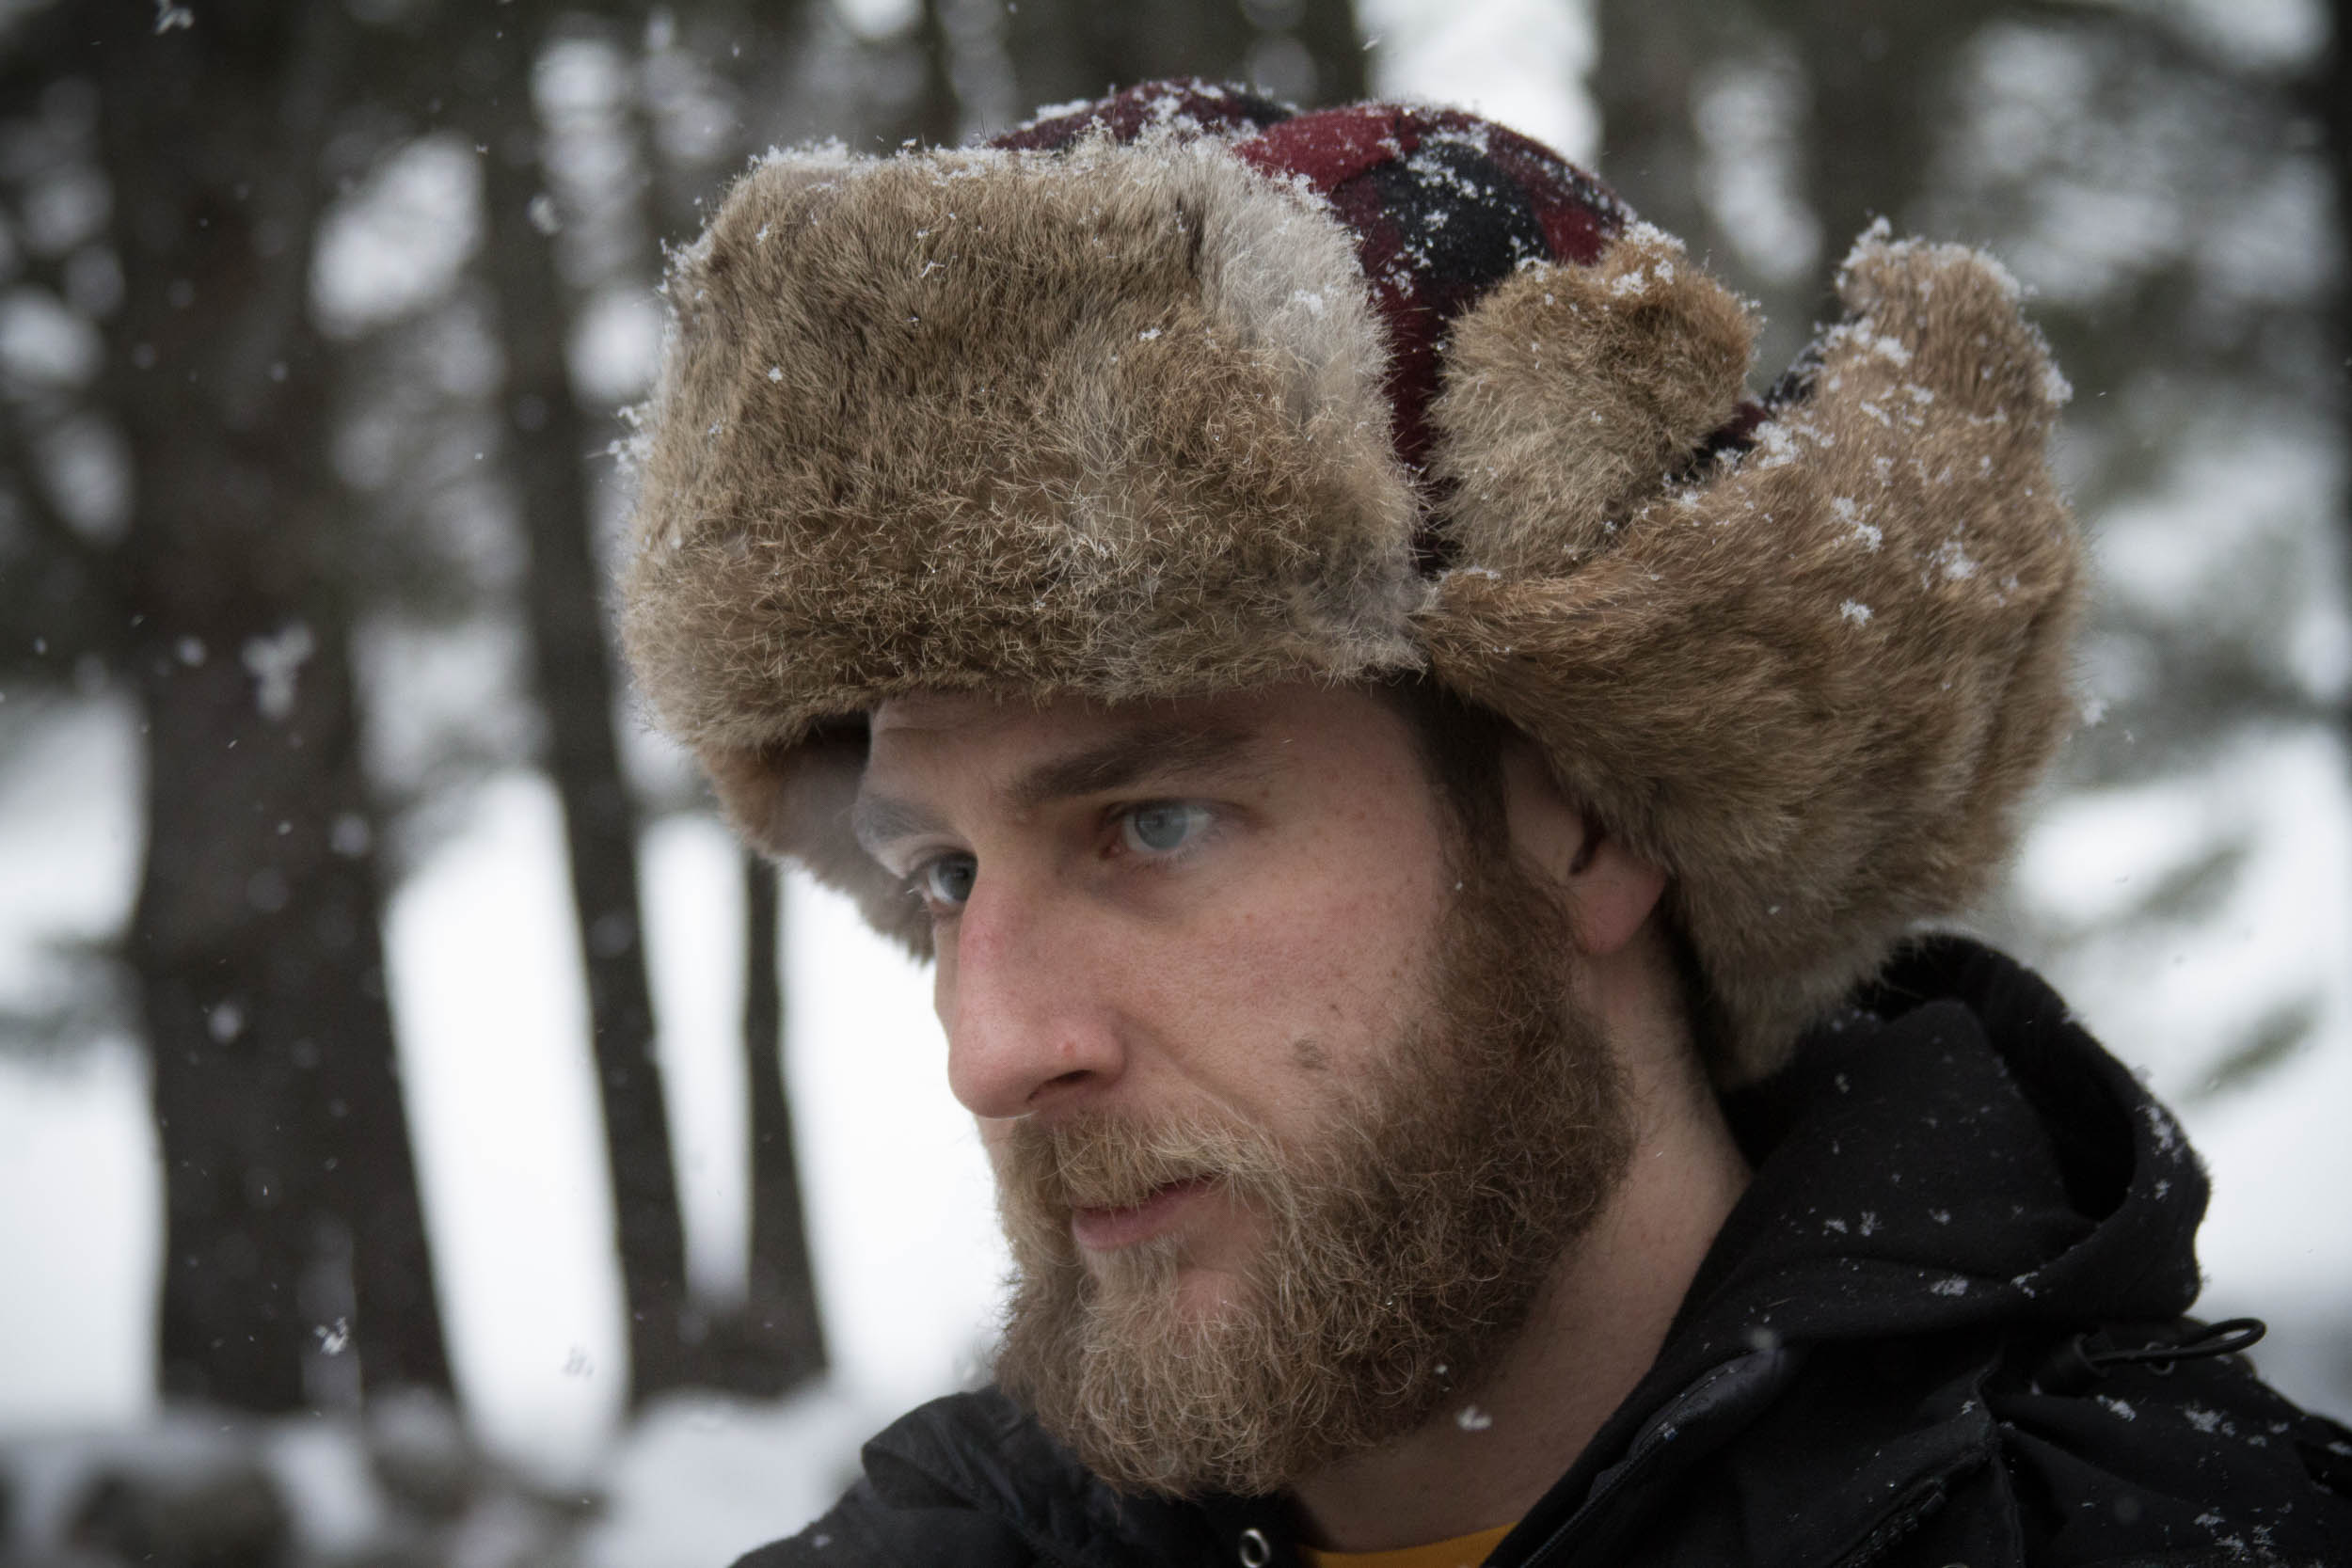 1st assistant director david woolner during the first snowy days of the shoot.